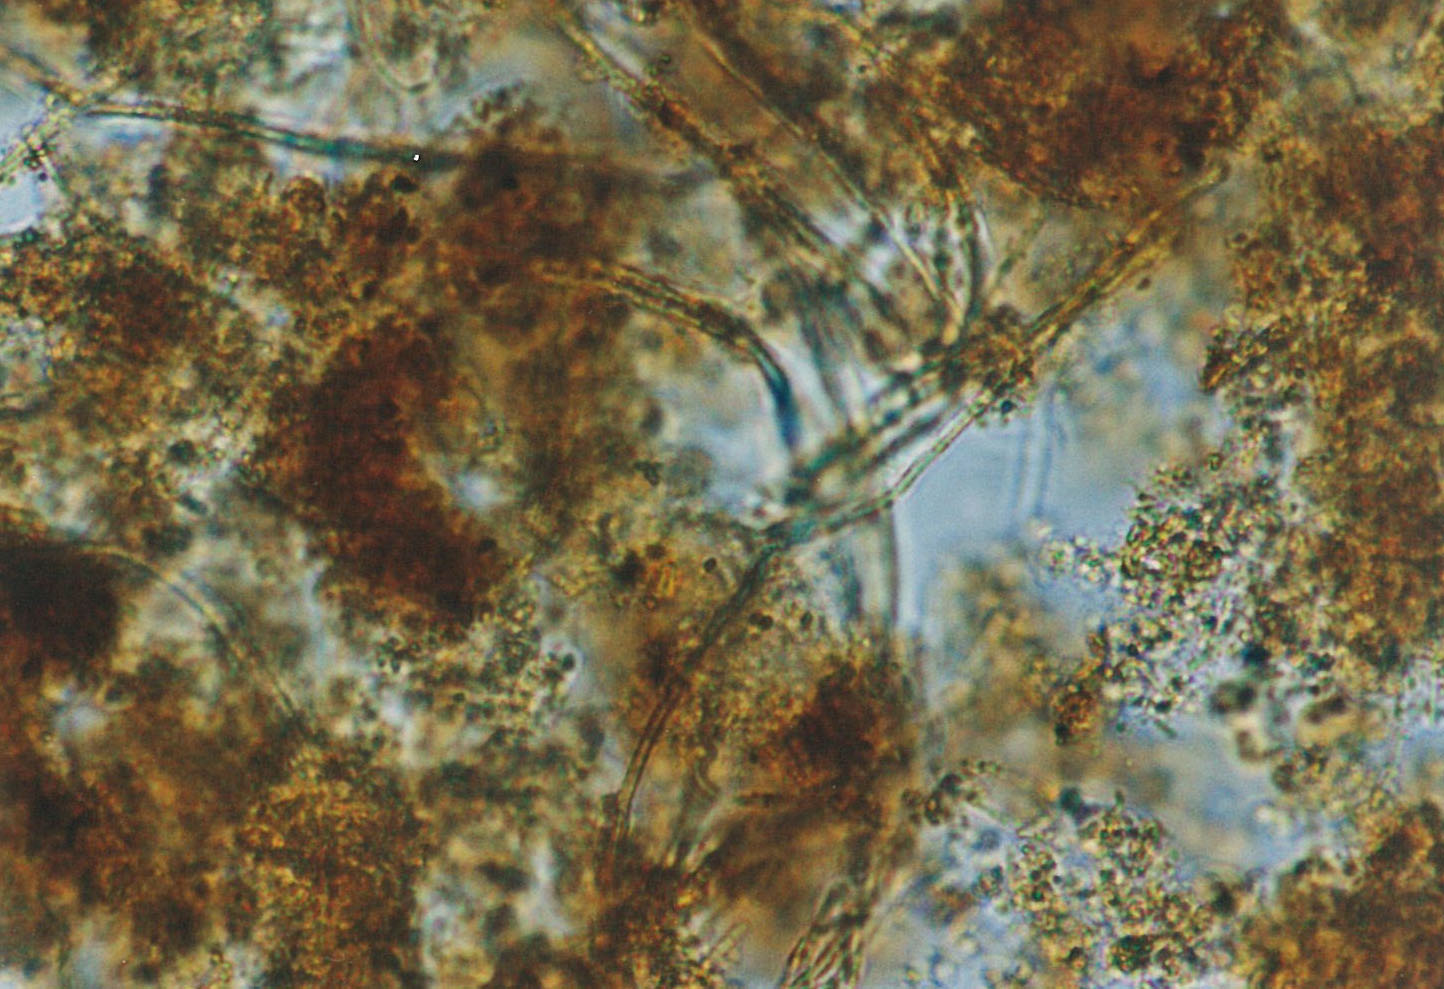 mixed iron-related biofilm